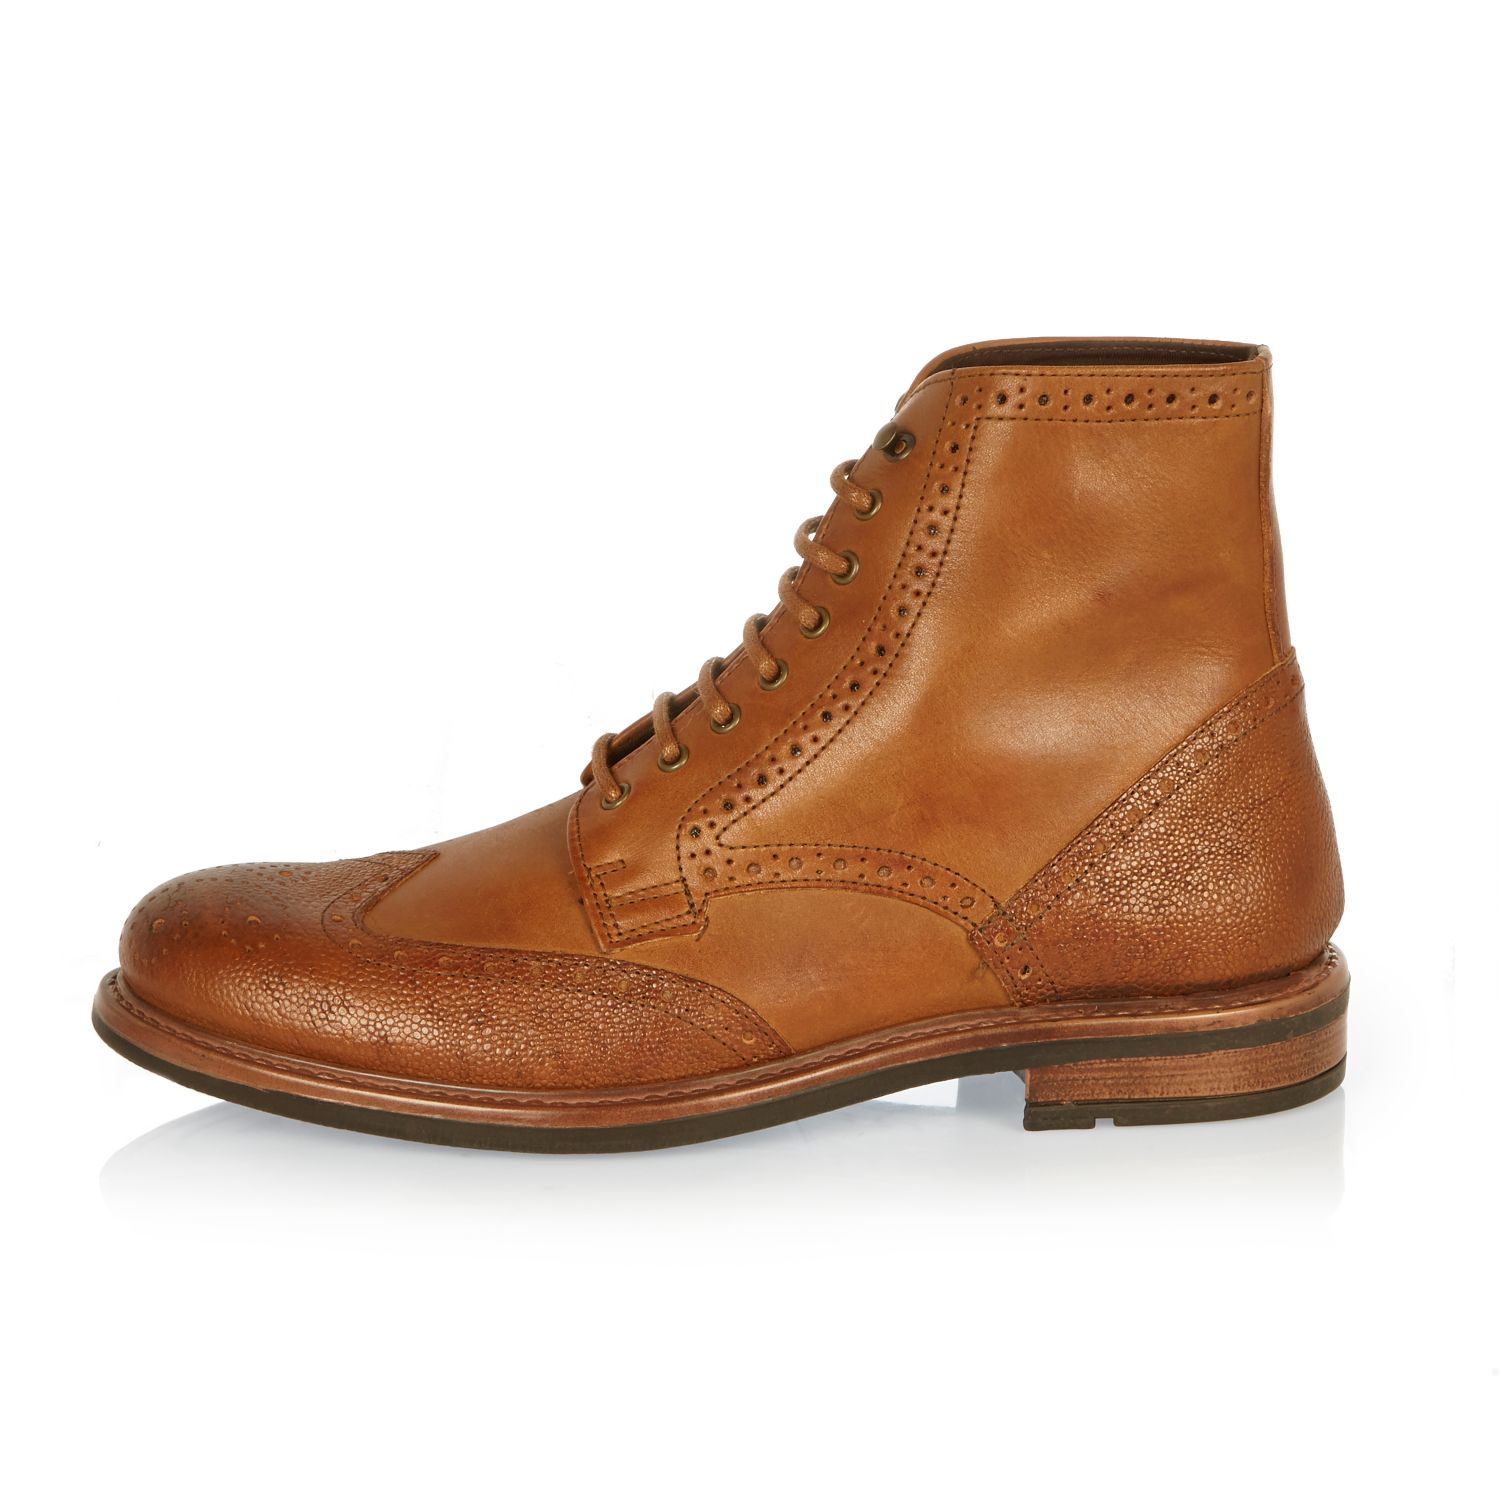 Men's Brogues Put your best foot forward with a pair of carefully crafted, classic brogue shoes. Available in black, brown and tan leather, with decorative punched detailing, lace-up brogue shoes will instantly smarten up your outfit.